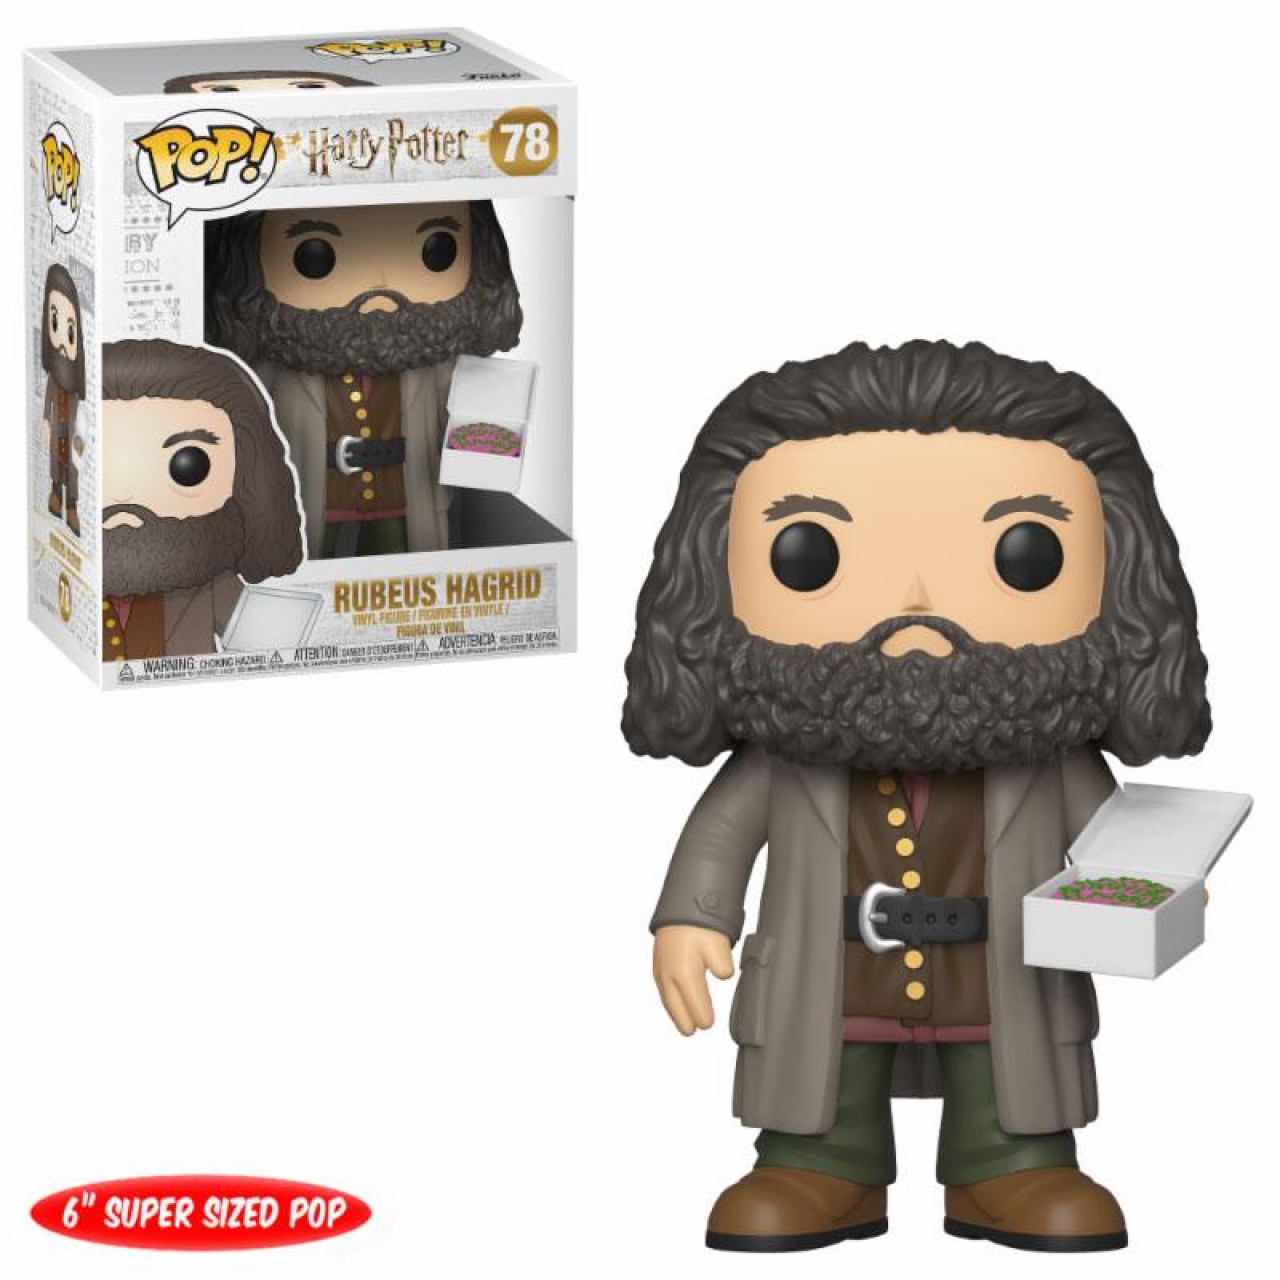 Harry Potter Super Sized POP! Movies Vinyl Figure Hagrid with Cake 14 cm